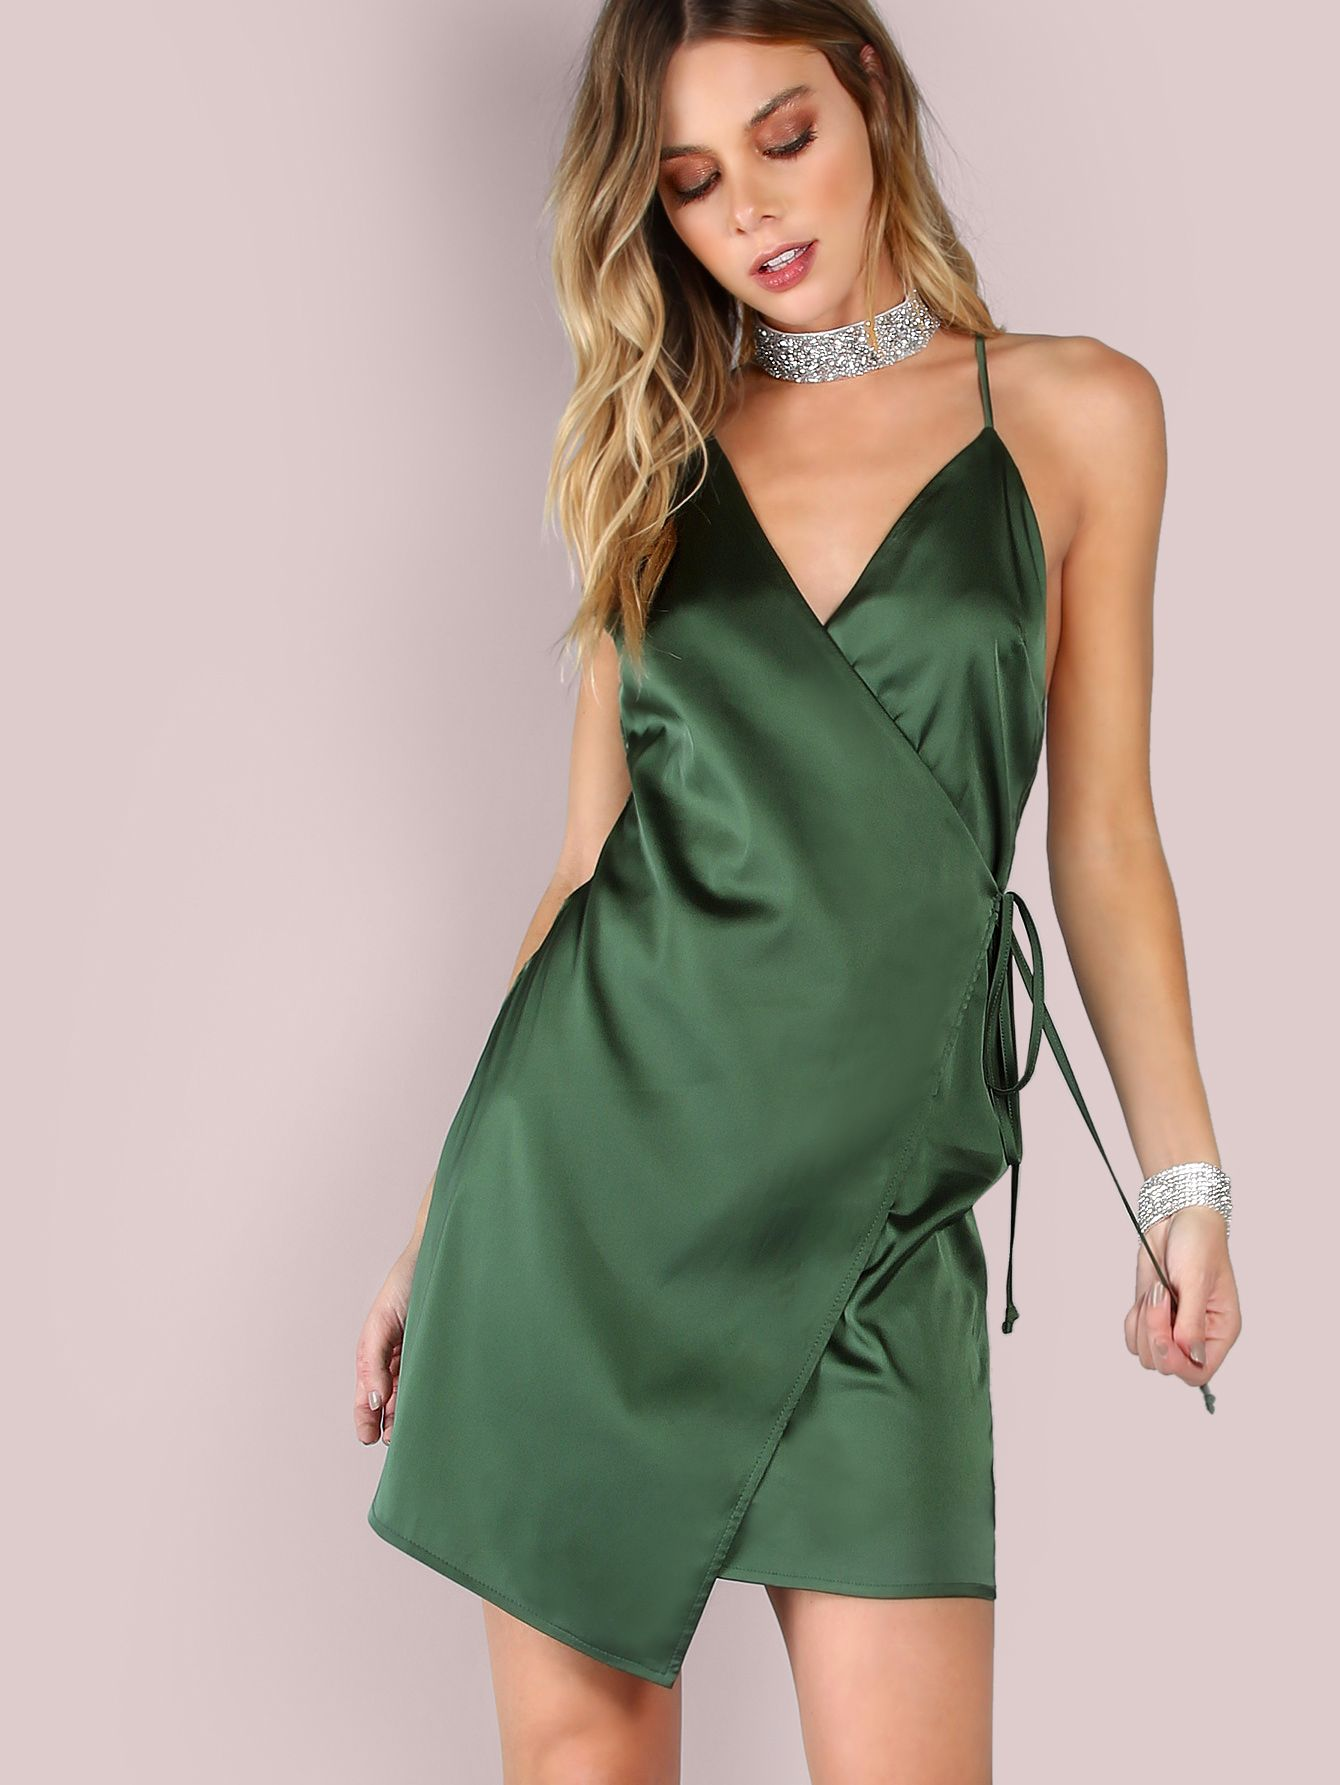 5518e5c5457 ... this festively chic dress. Featuring a wrap over body with a tieable  side waist